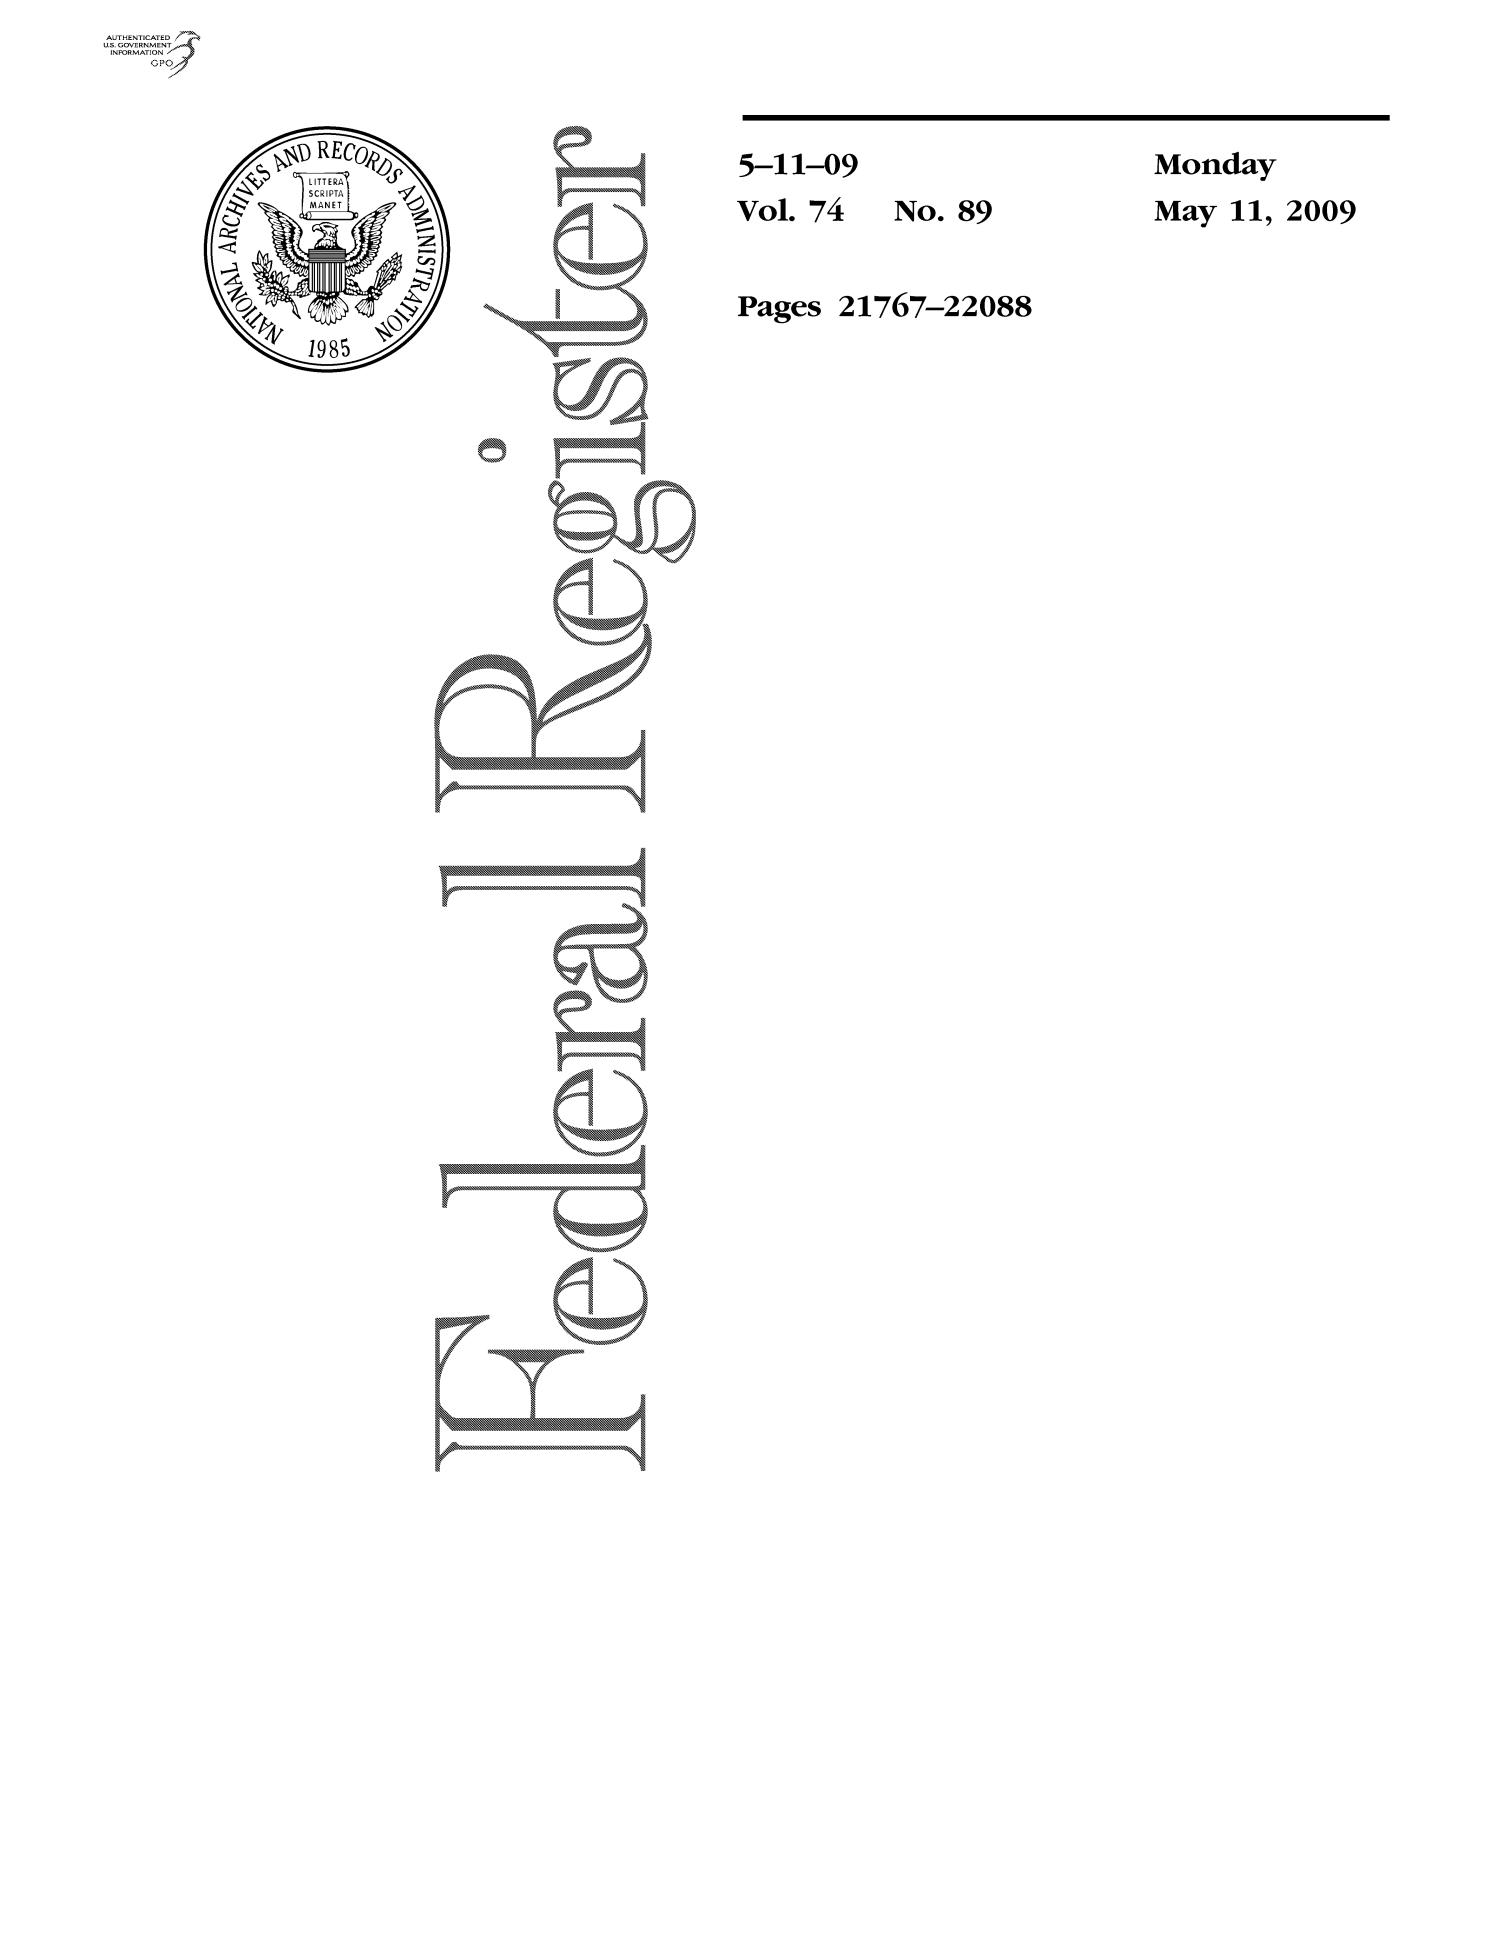 Federal Register, Volume 74, Number 89, May 11, 2009, Pages 21767-22088                                                                                                      Title Page